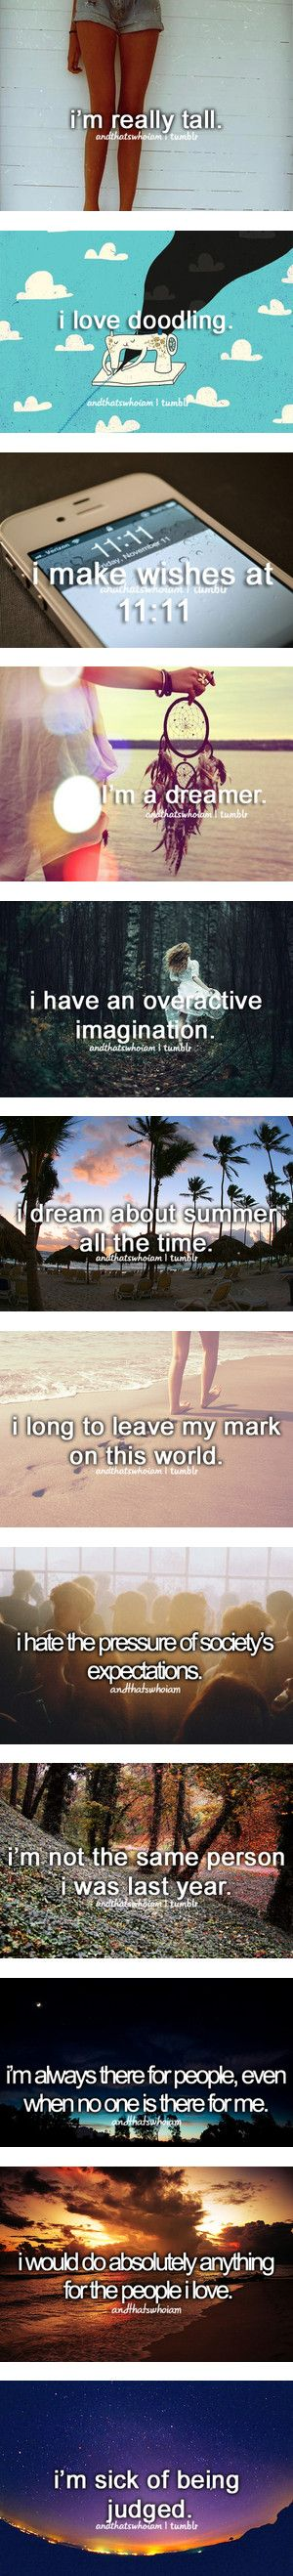 """""""...and that's who i am(part1)"""" by peaceloveforever713 ❤ liked on Polyvore"""